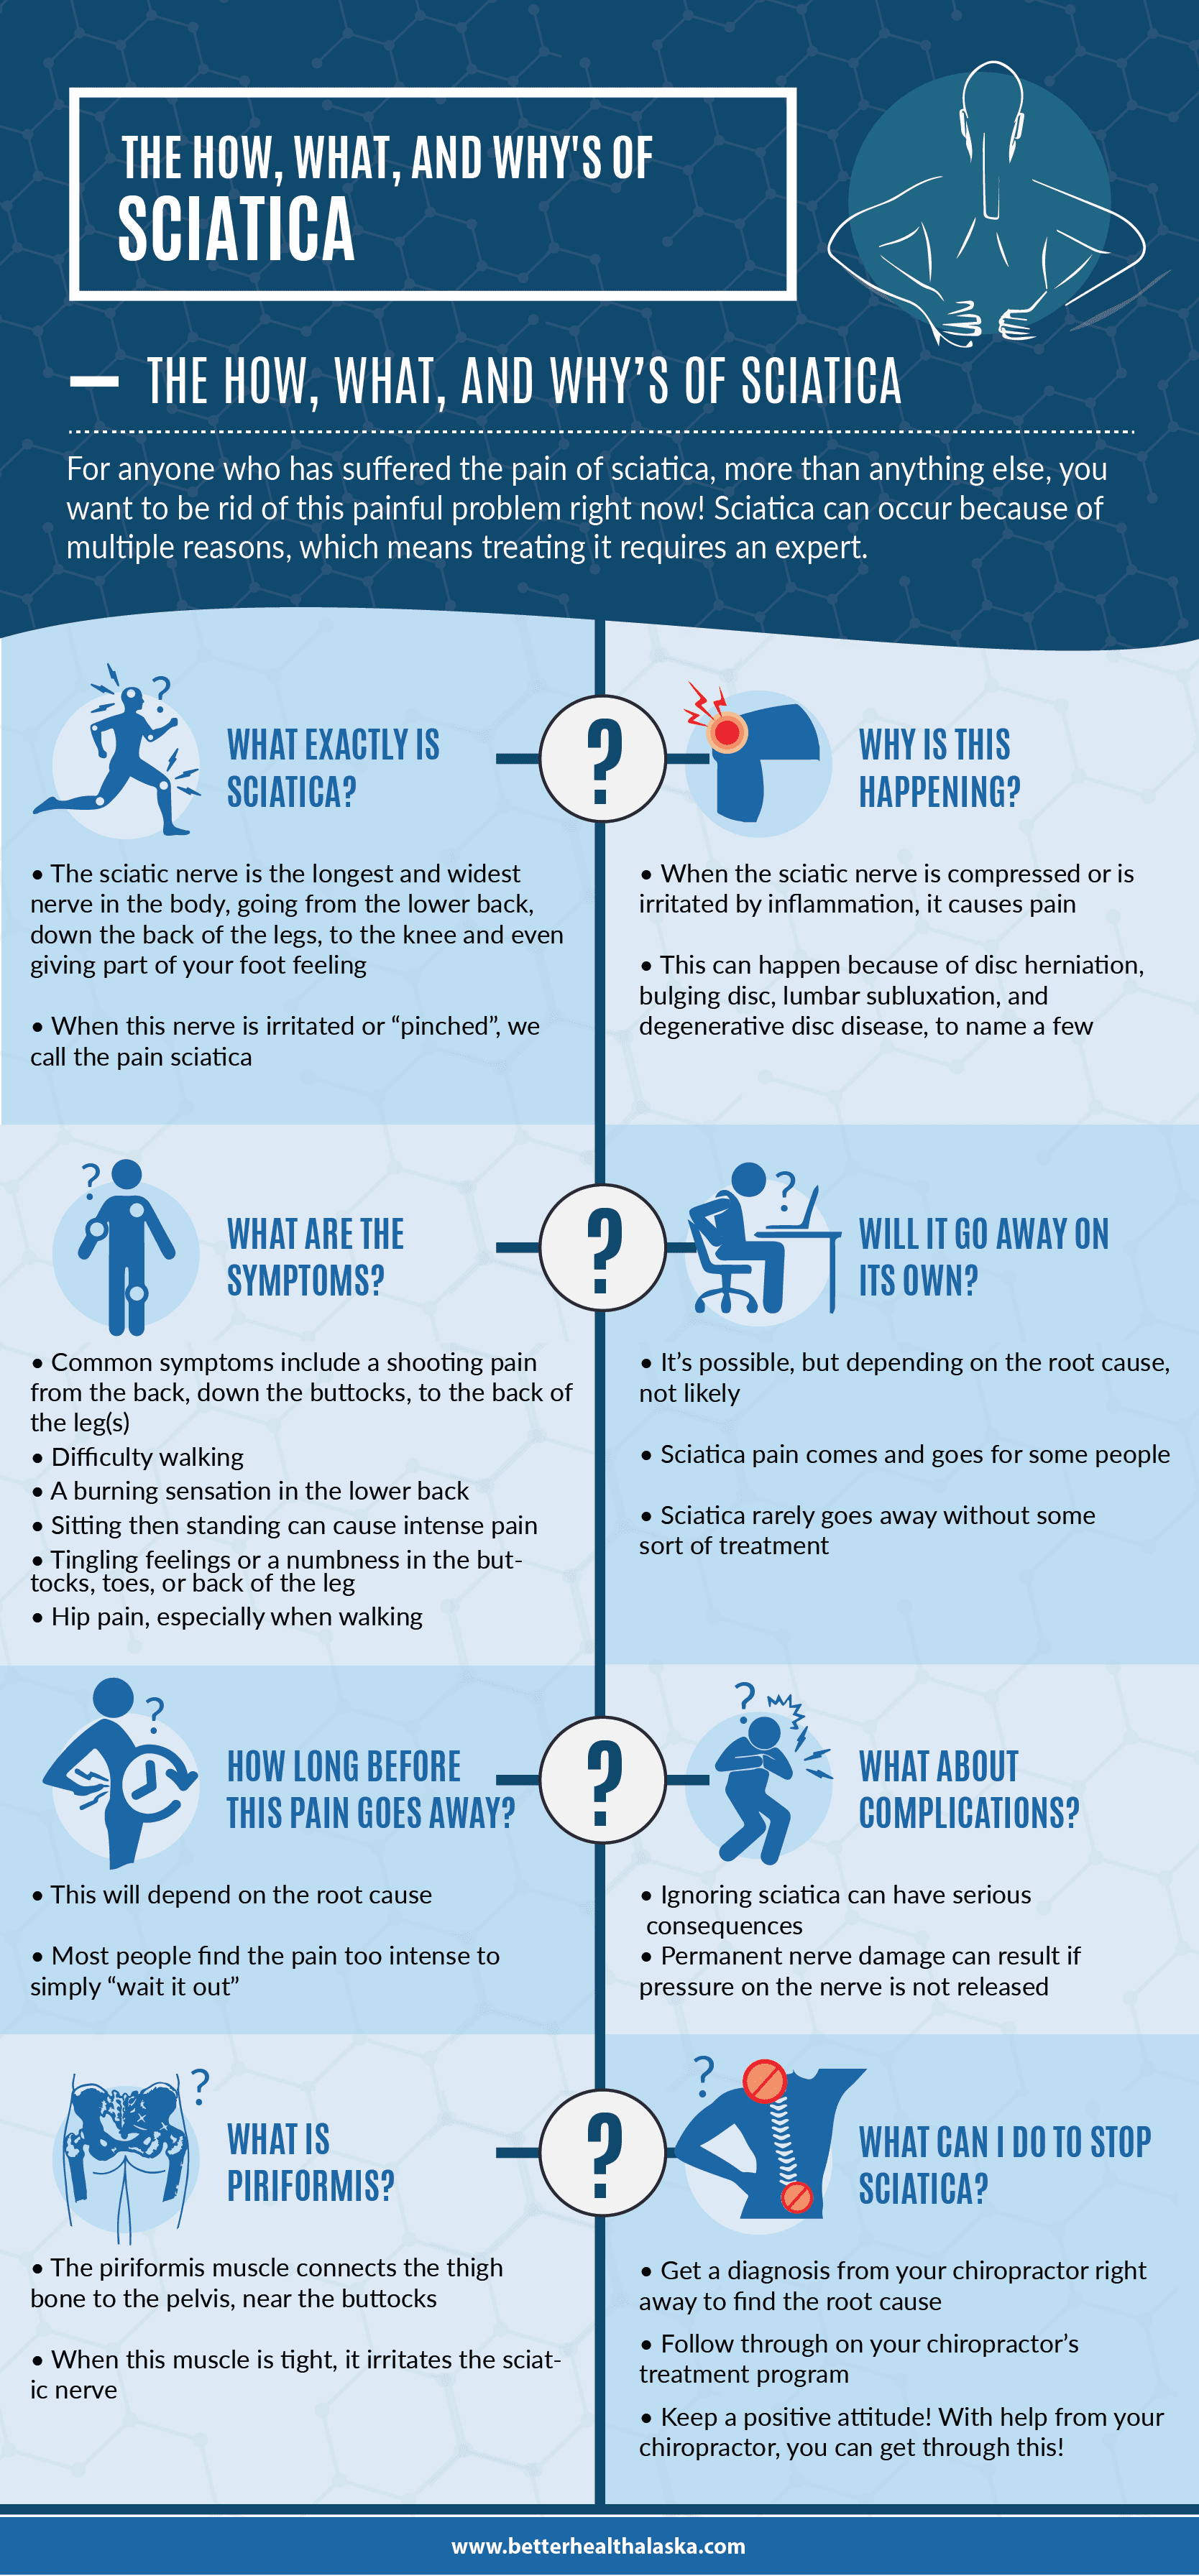 The How, What and Why's of Sciatica infographic